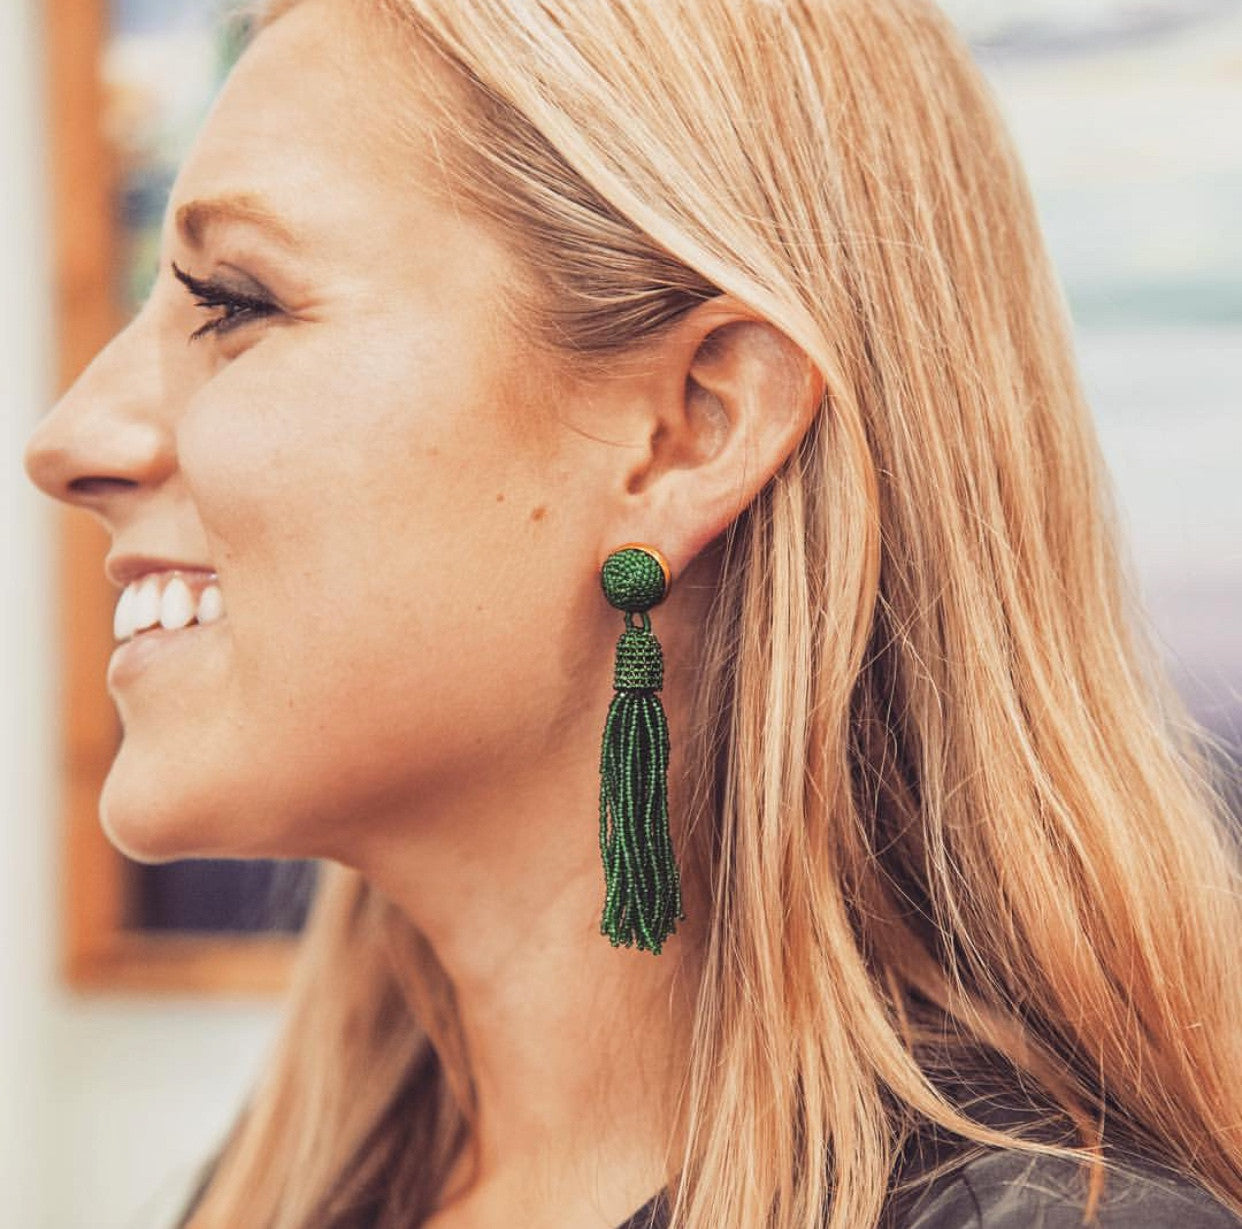 Southern jewelry designer tassel earrings Green Tassel Earrings, Molly Jane Designs, Spring earrings, Earrings to wear to prom, jewelry for mothers day, mothers day gift, emerald green jewelry,